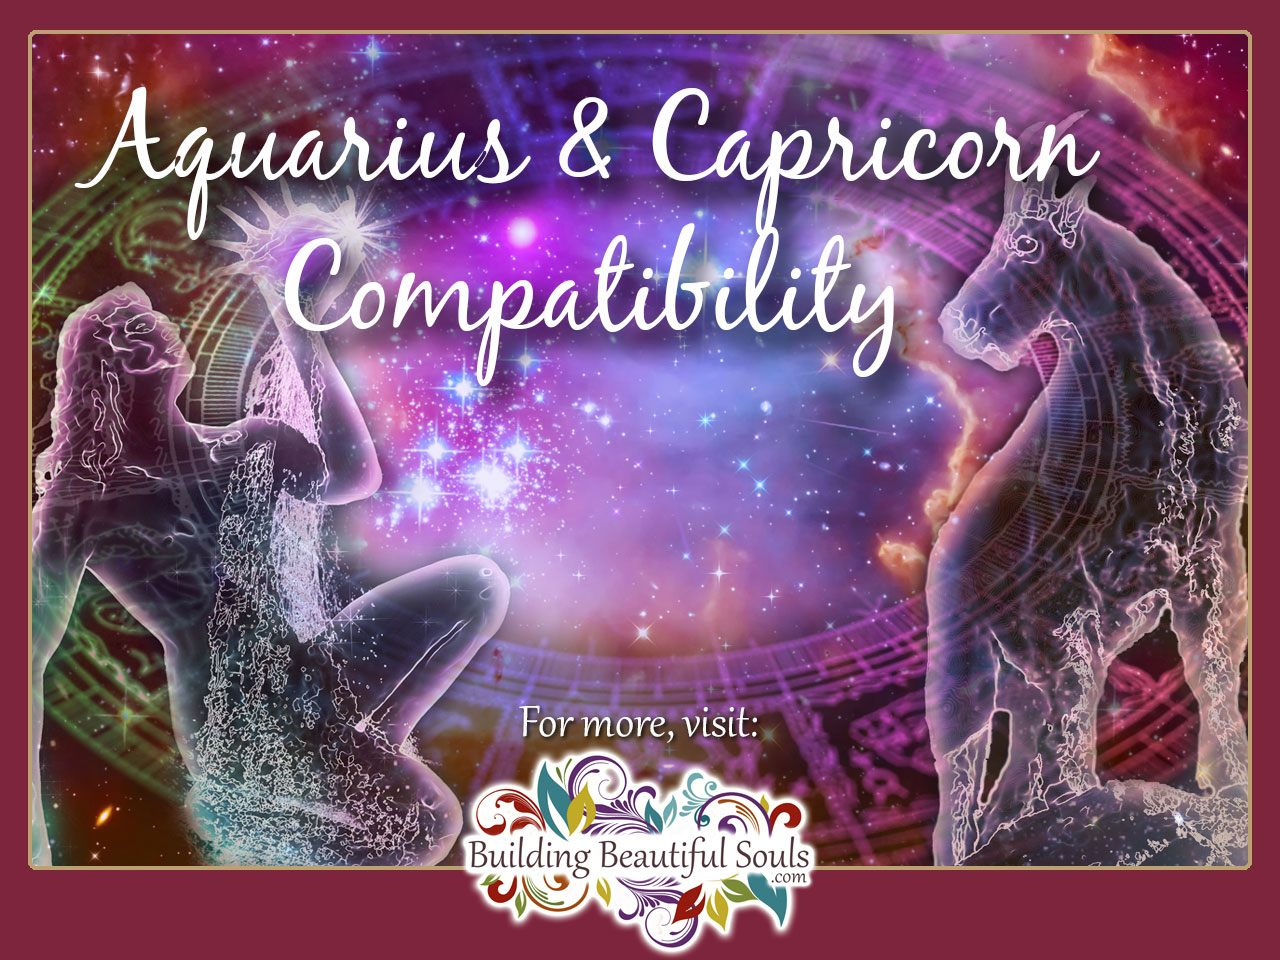 Aquarius and Capricorn 1280x960